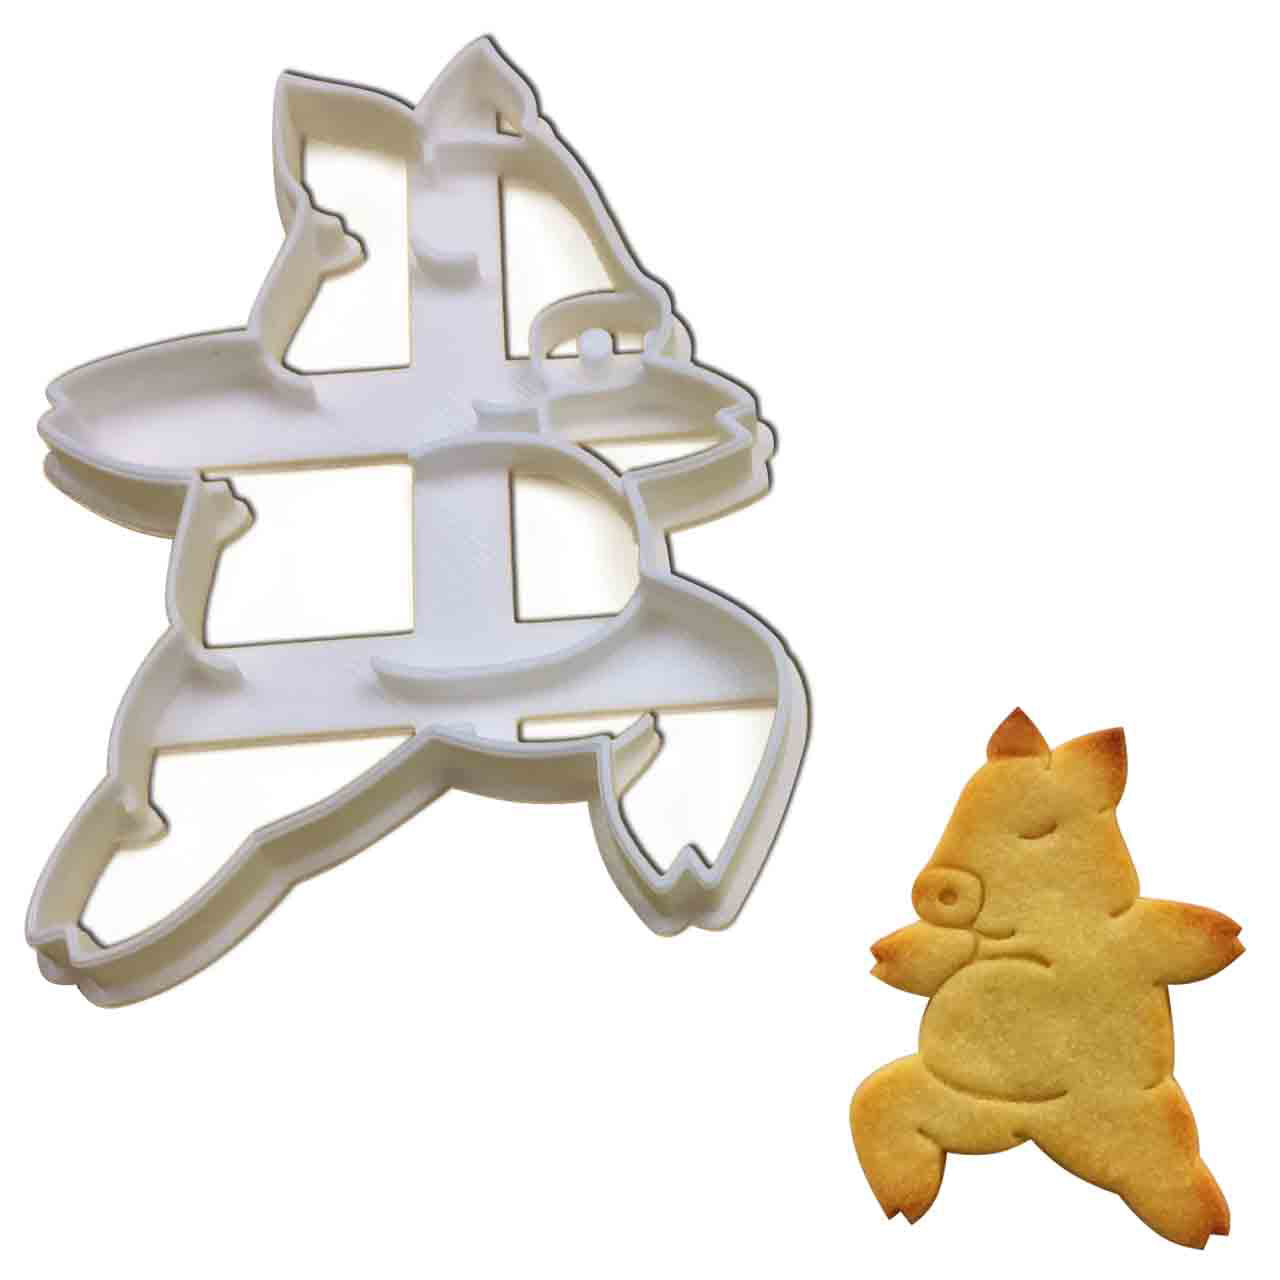 Yoga Pig Warrior Pose 2 Cookie Cutter